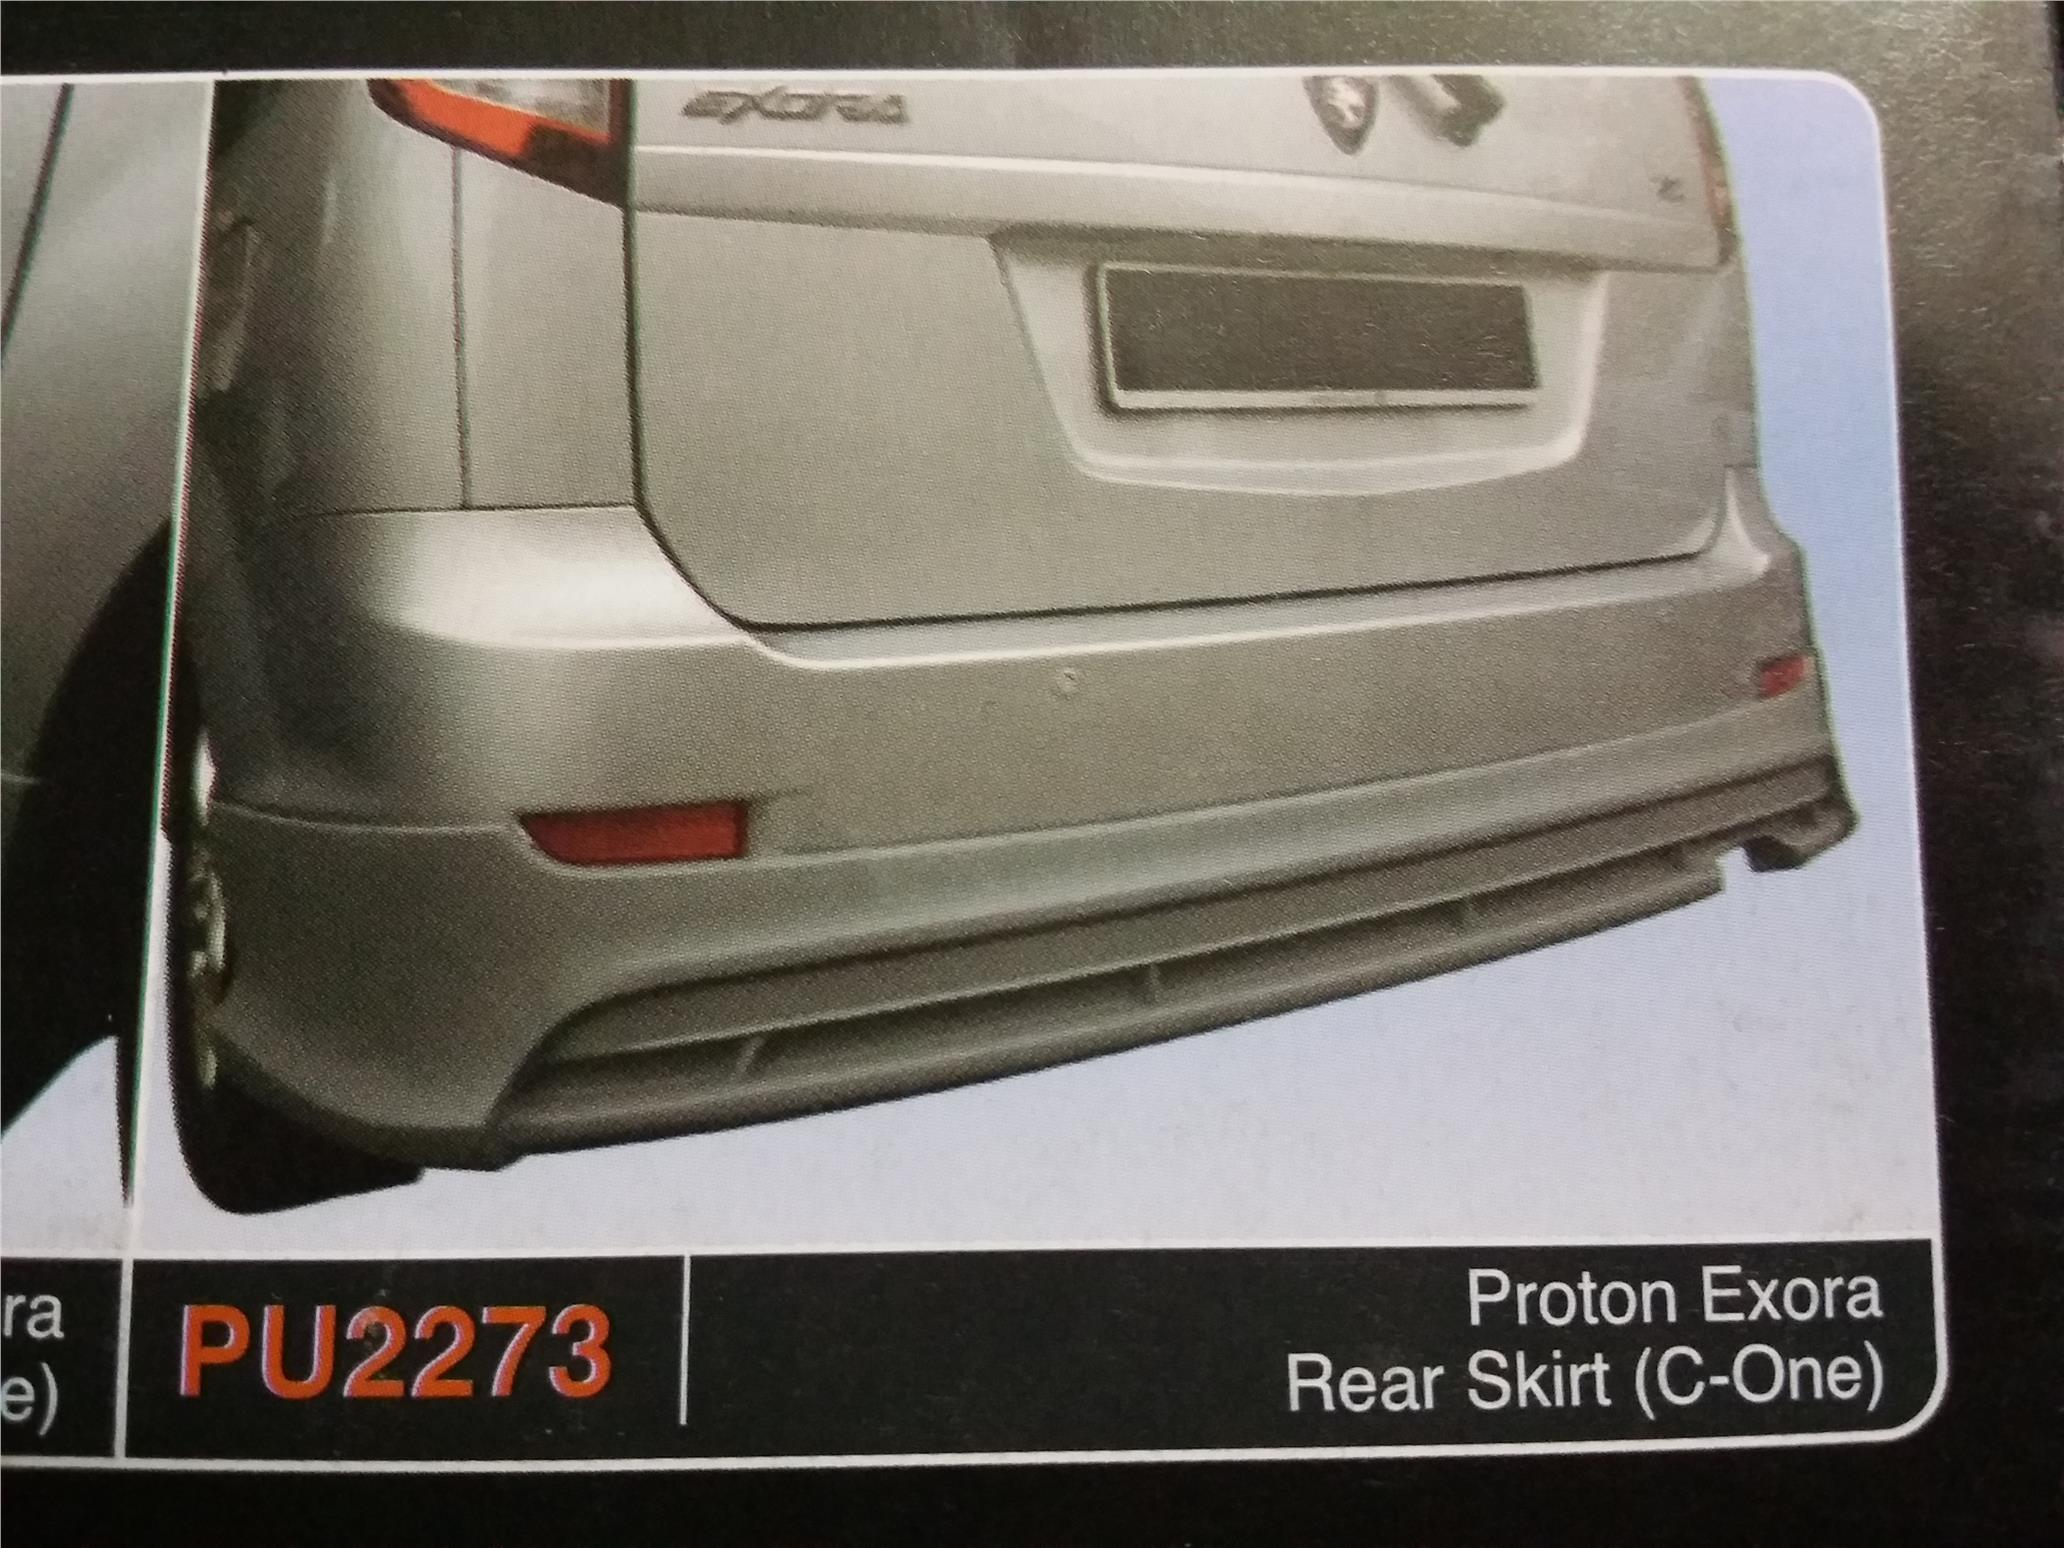 PROTON EXORA REAR SKIRT C-ONE